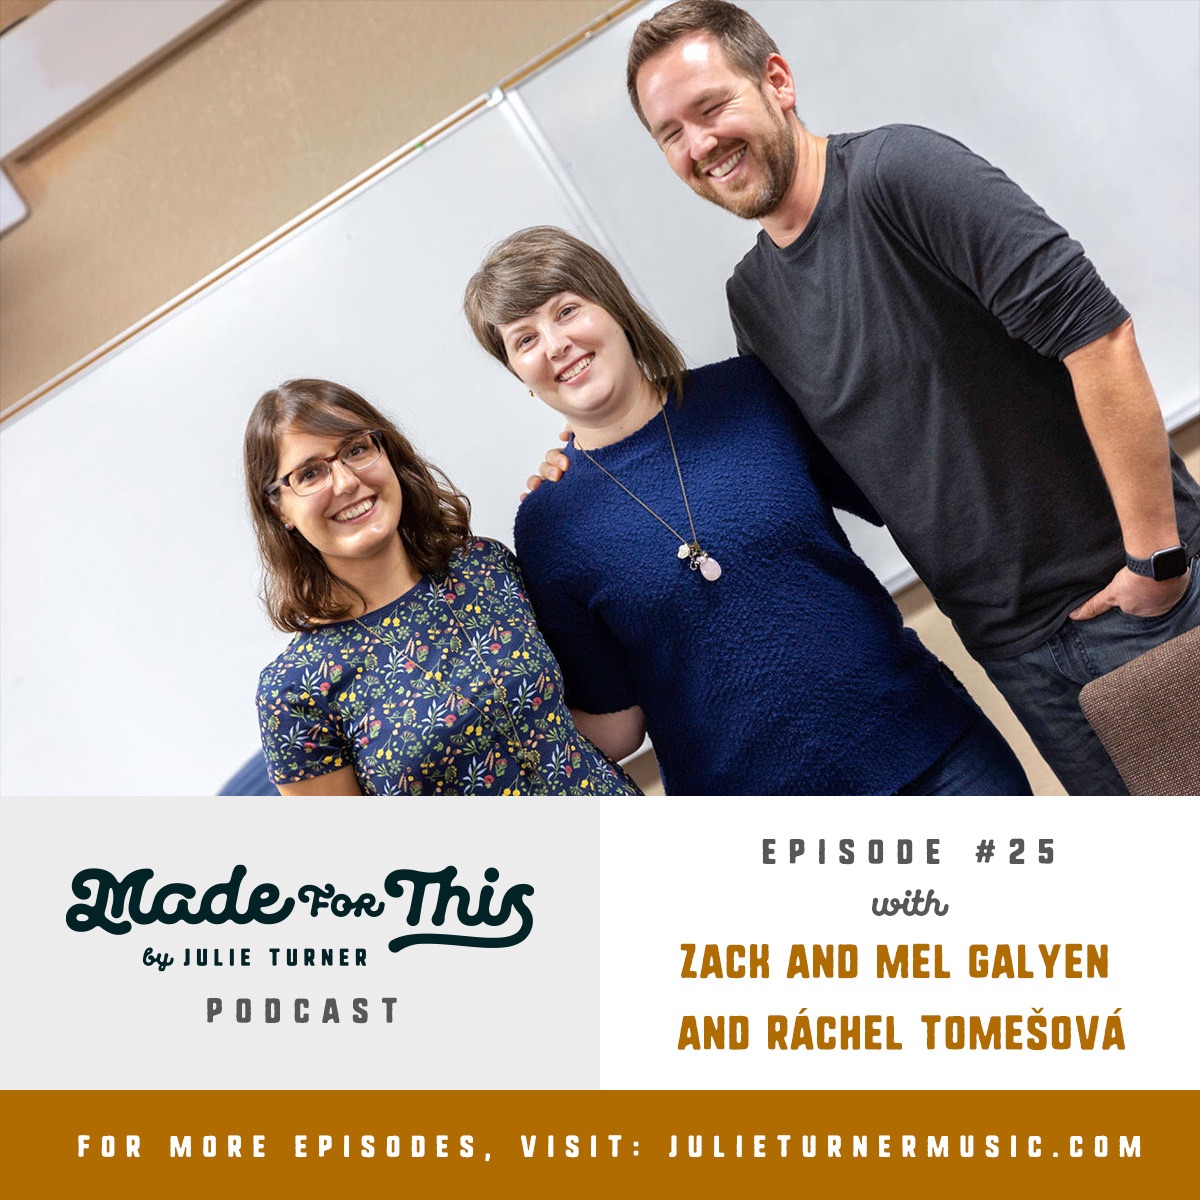 Made For This Podcast-Episode 25: Zack and Mel Galyen